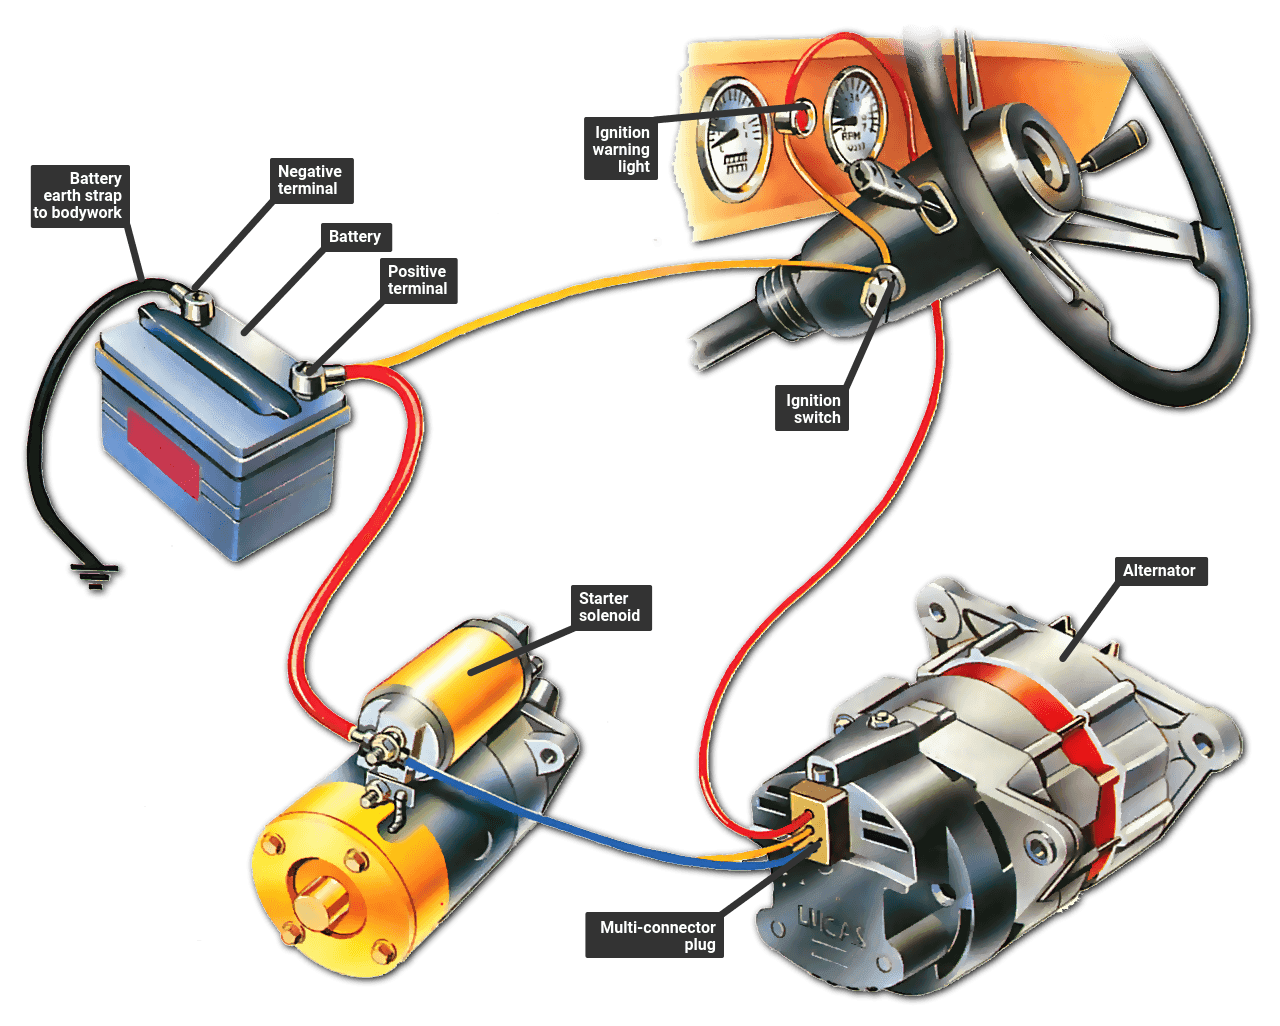 Troubleshooting The Ignition Warning Light How A Car Works Wiring Diagram And Provide Instruction So You Can Trace Circuit